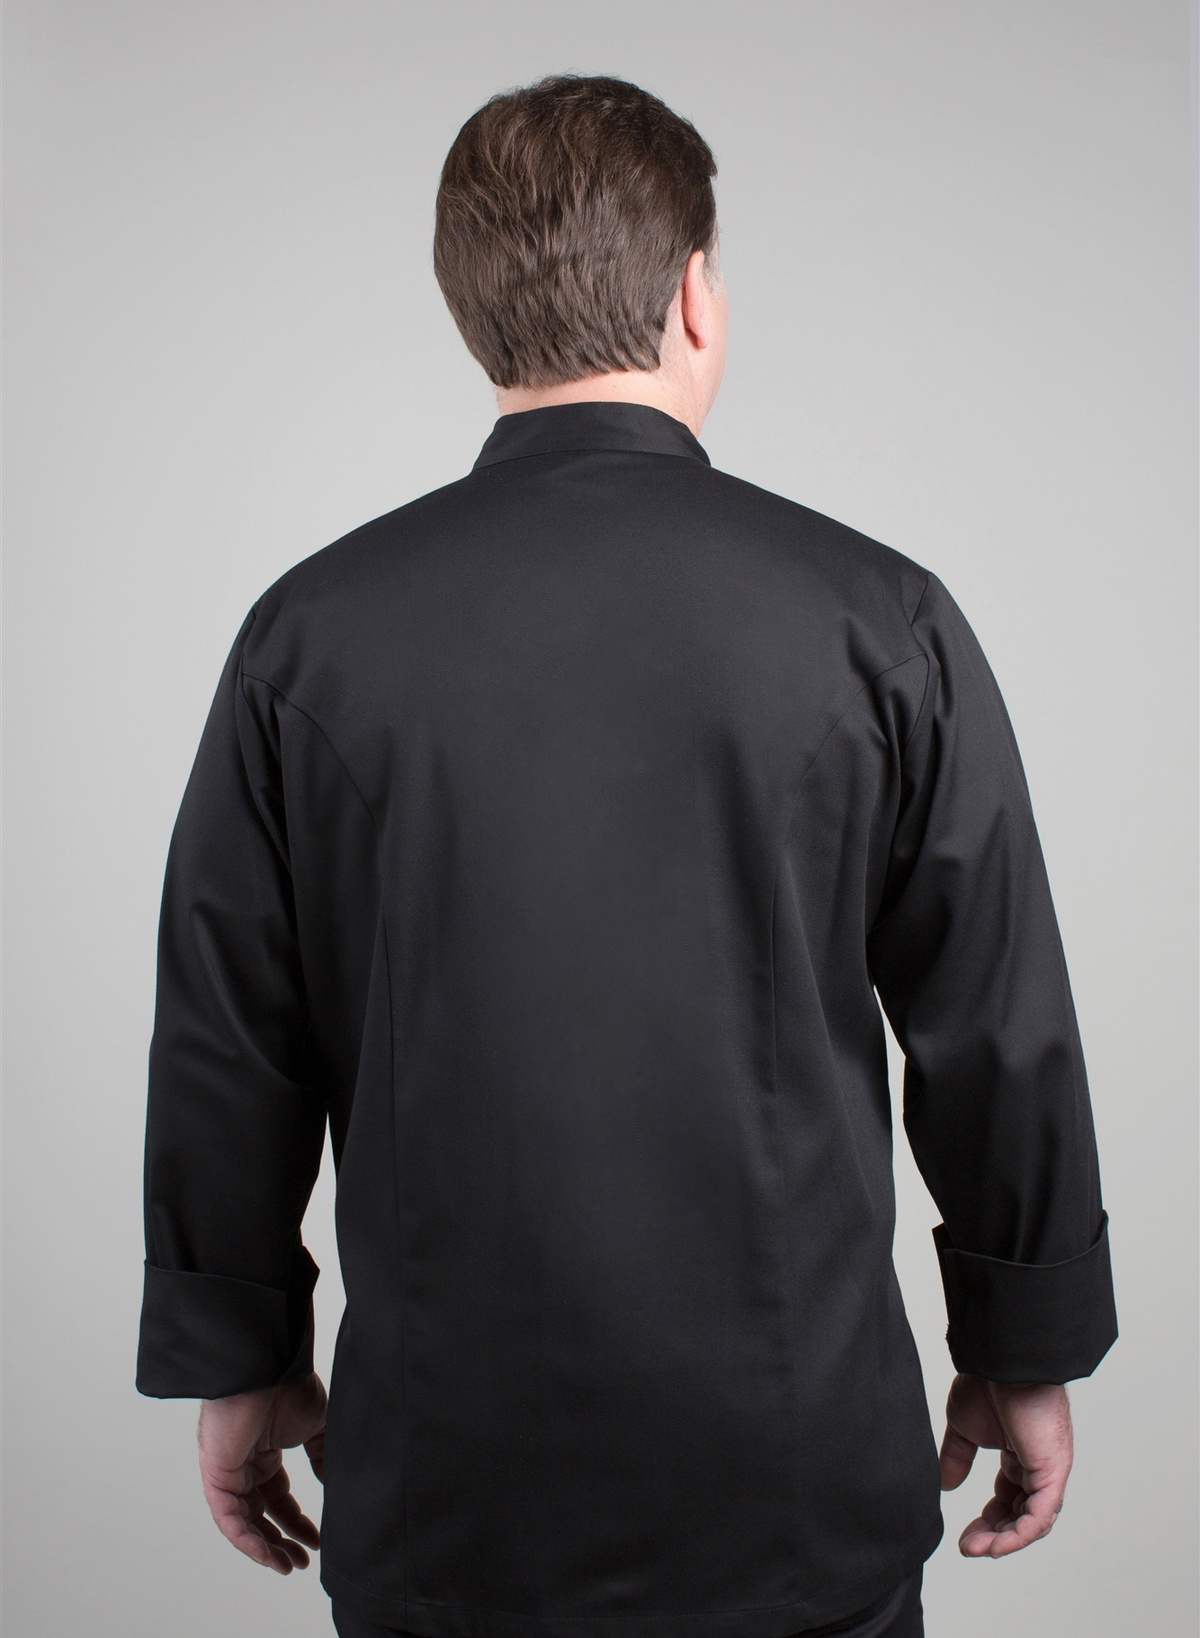 Poly cotton chef jacket